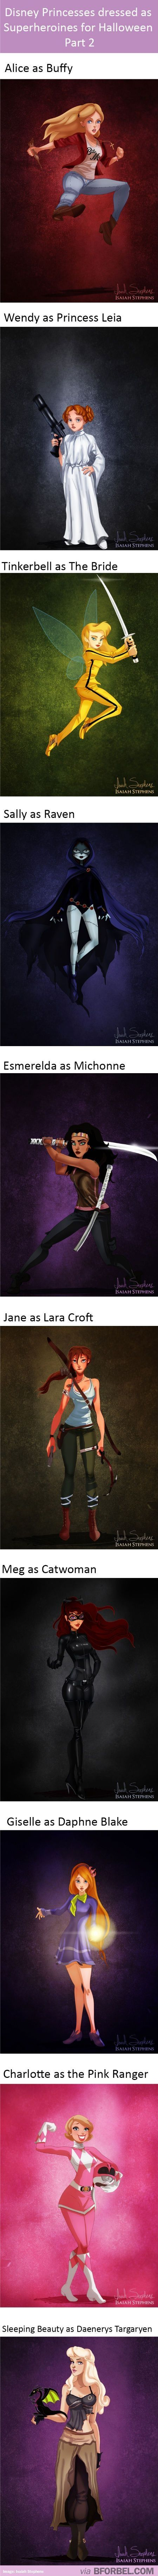 More Disney Princesses dressed as Superheroes for Halloween… by vladtodd